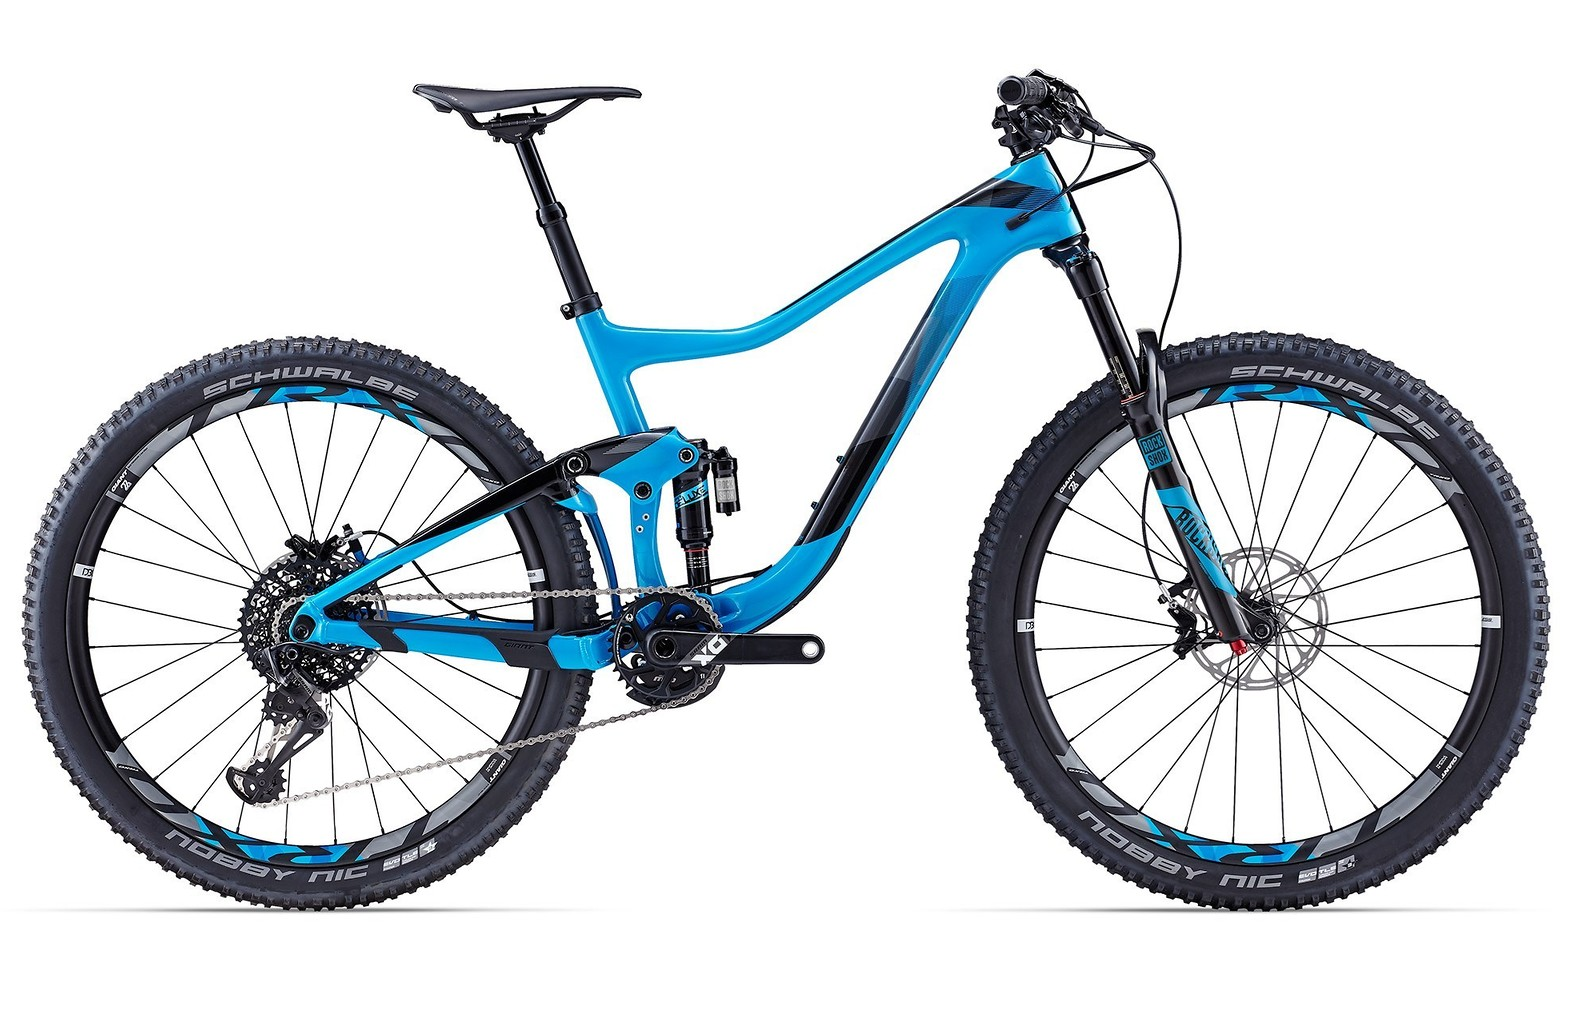 2017 Giant Trance Advanced 0 Reviews Comparisons Specs